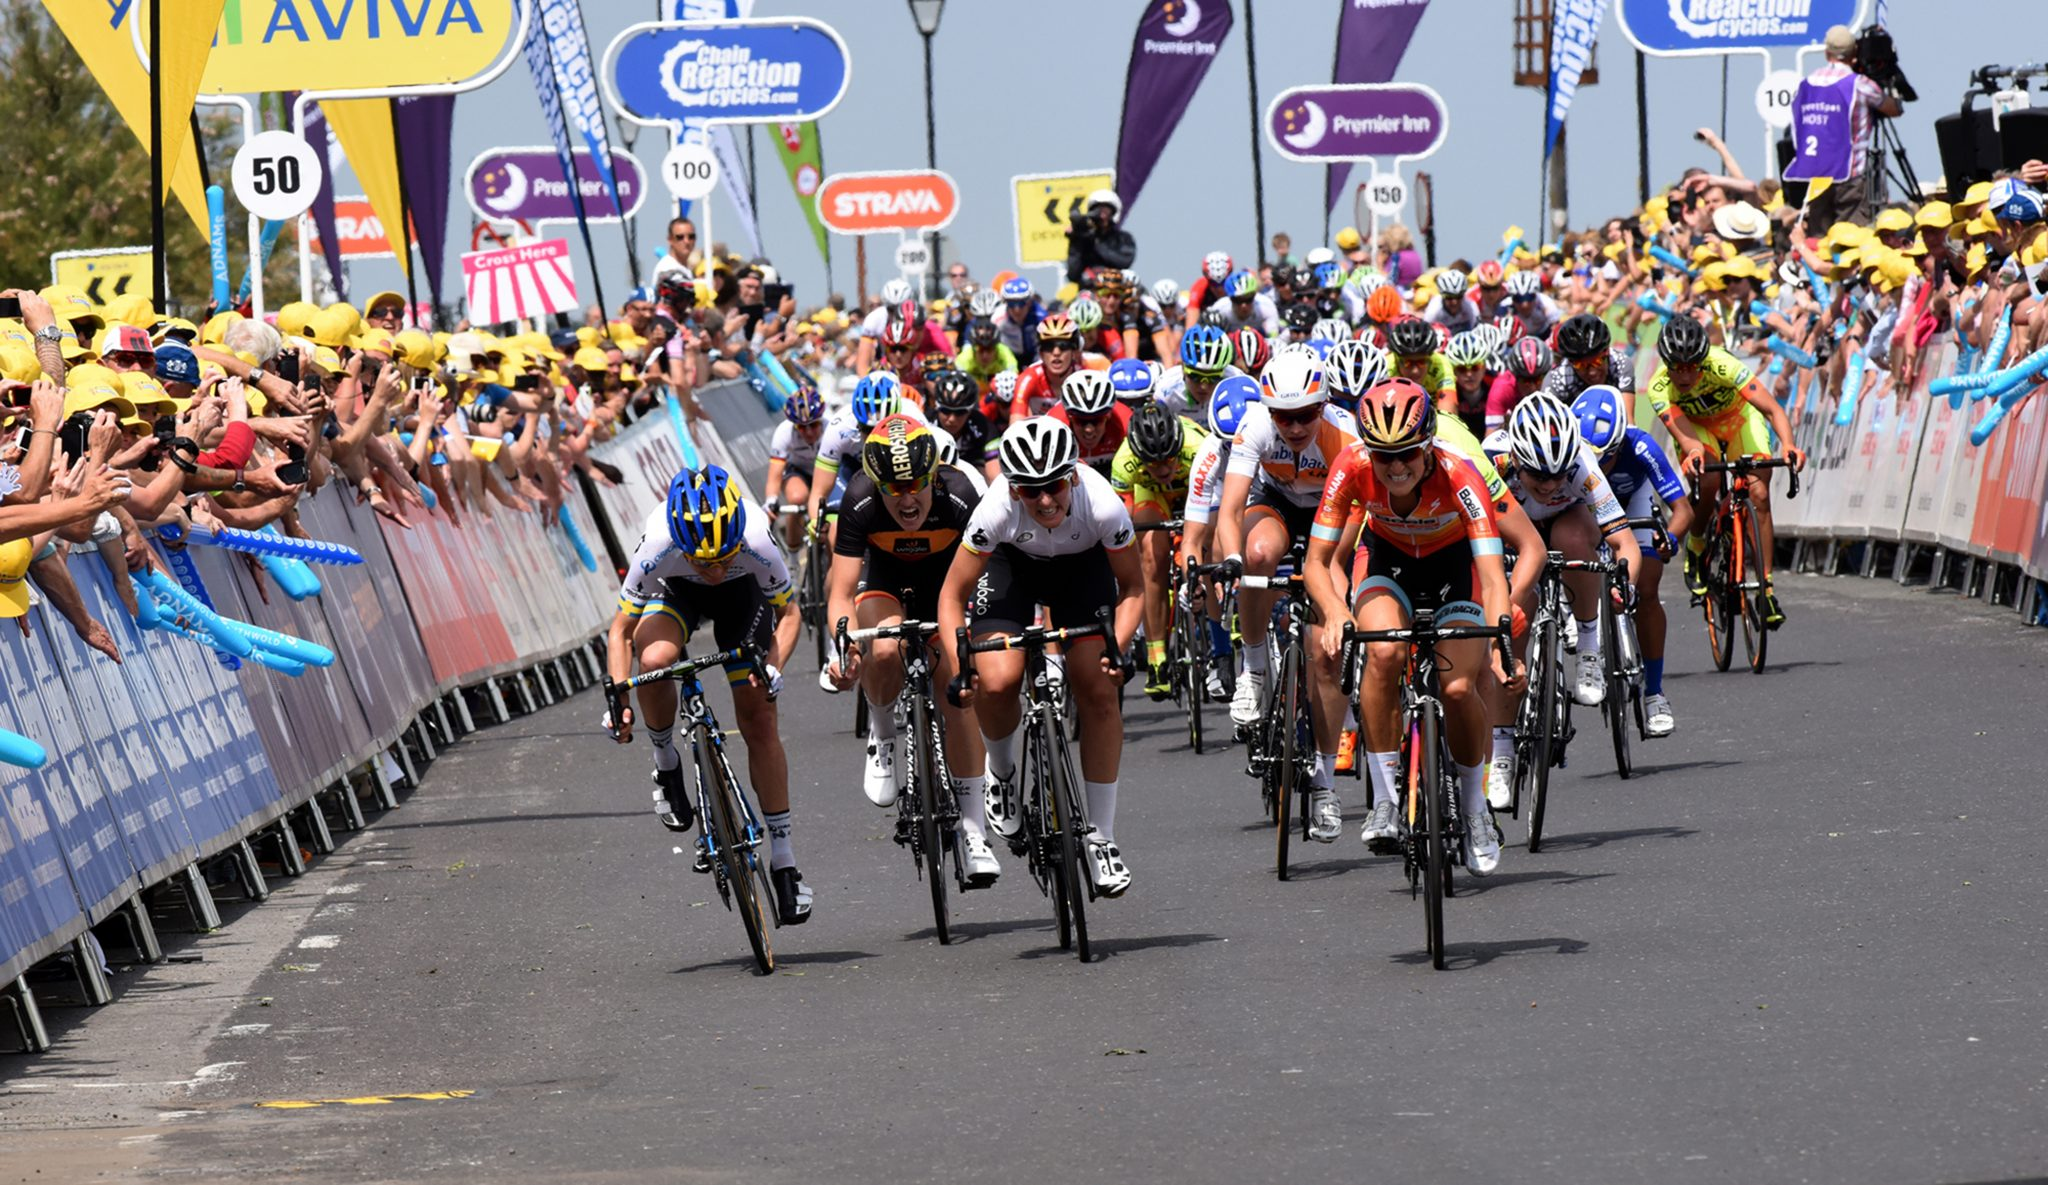 Aviva Women's Tour